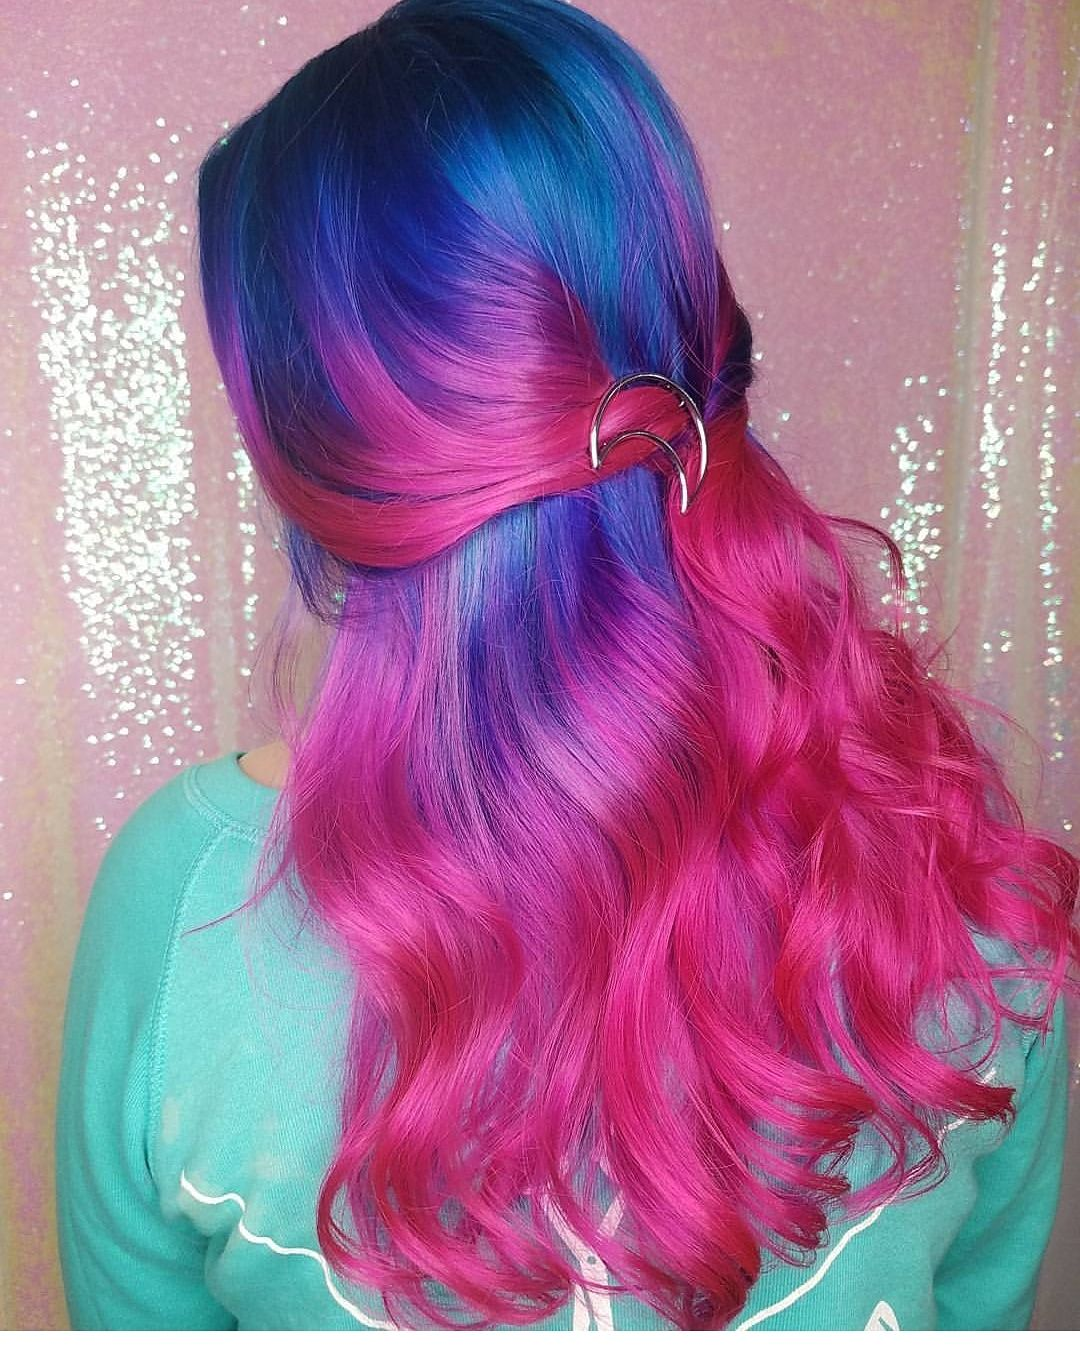 Neon Cotton Candy Using Manic Panic Atomic Turquoise And Iroiro Hot Hot Pink Hair Beauty Skin Deals M Hair Ponytail Styles Magenta Hair Cotton Candy Hair